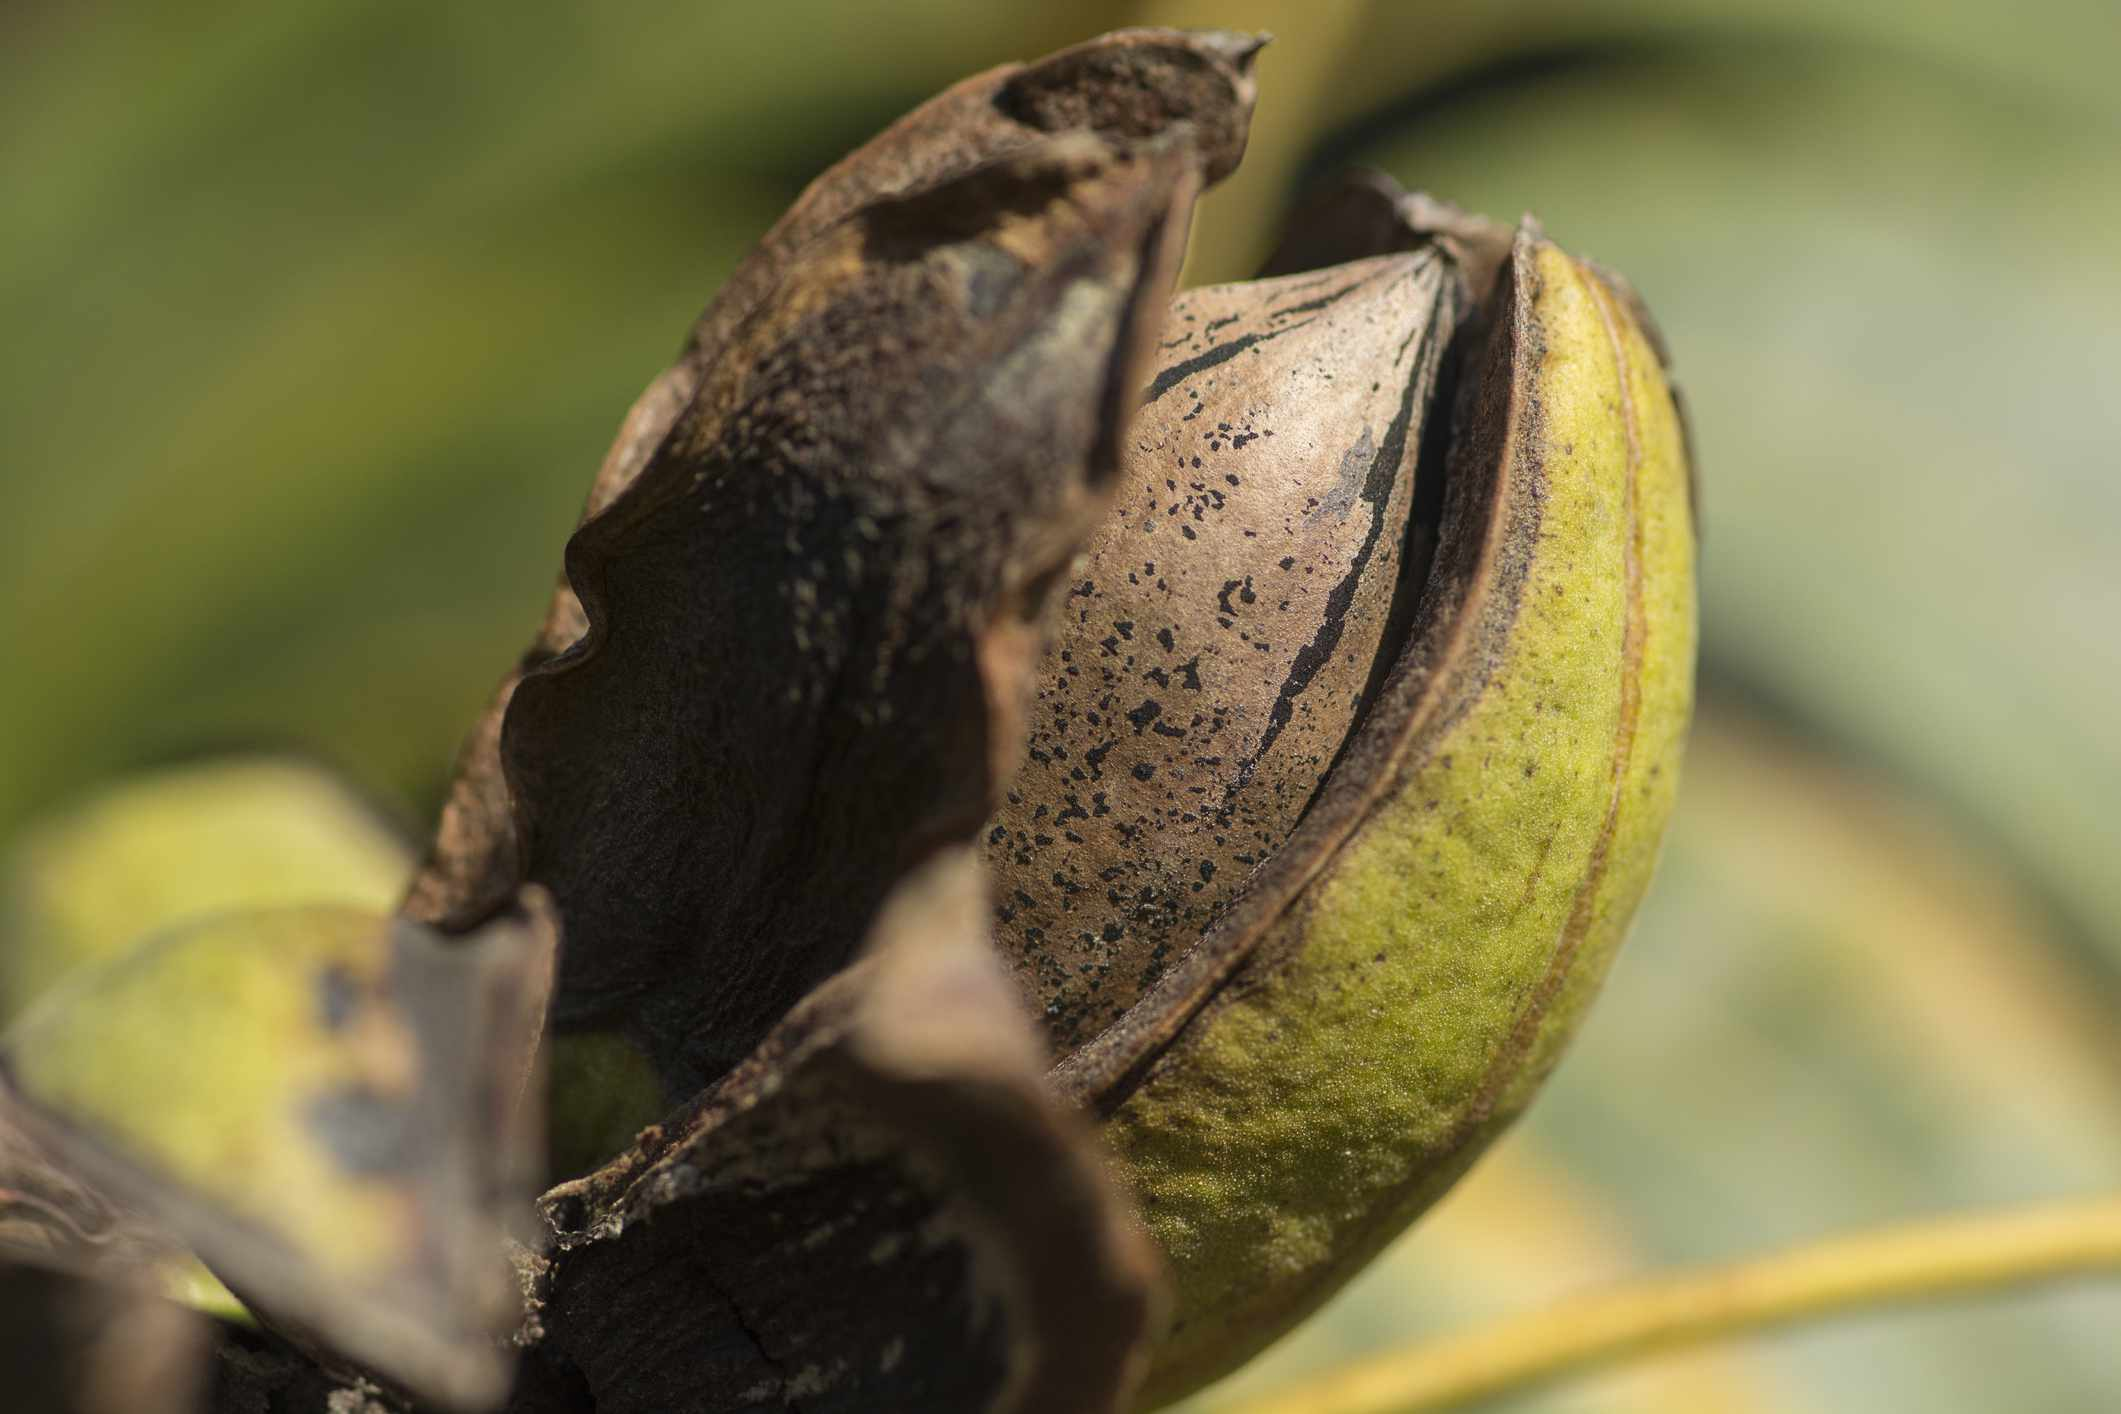 A pecan nut opening up on a tree.